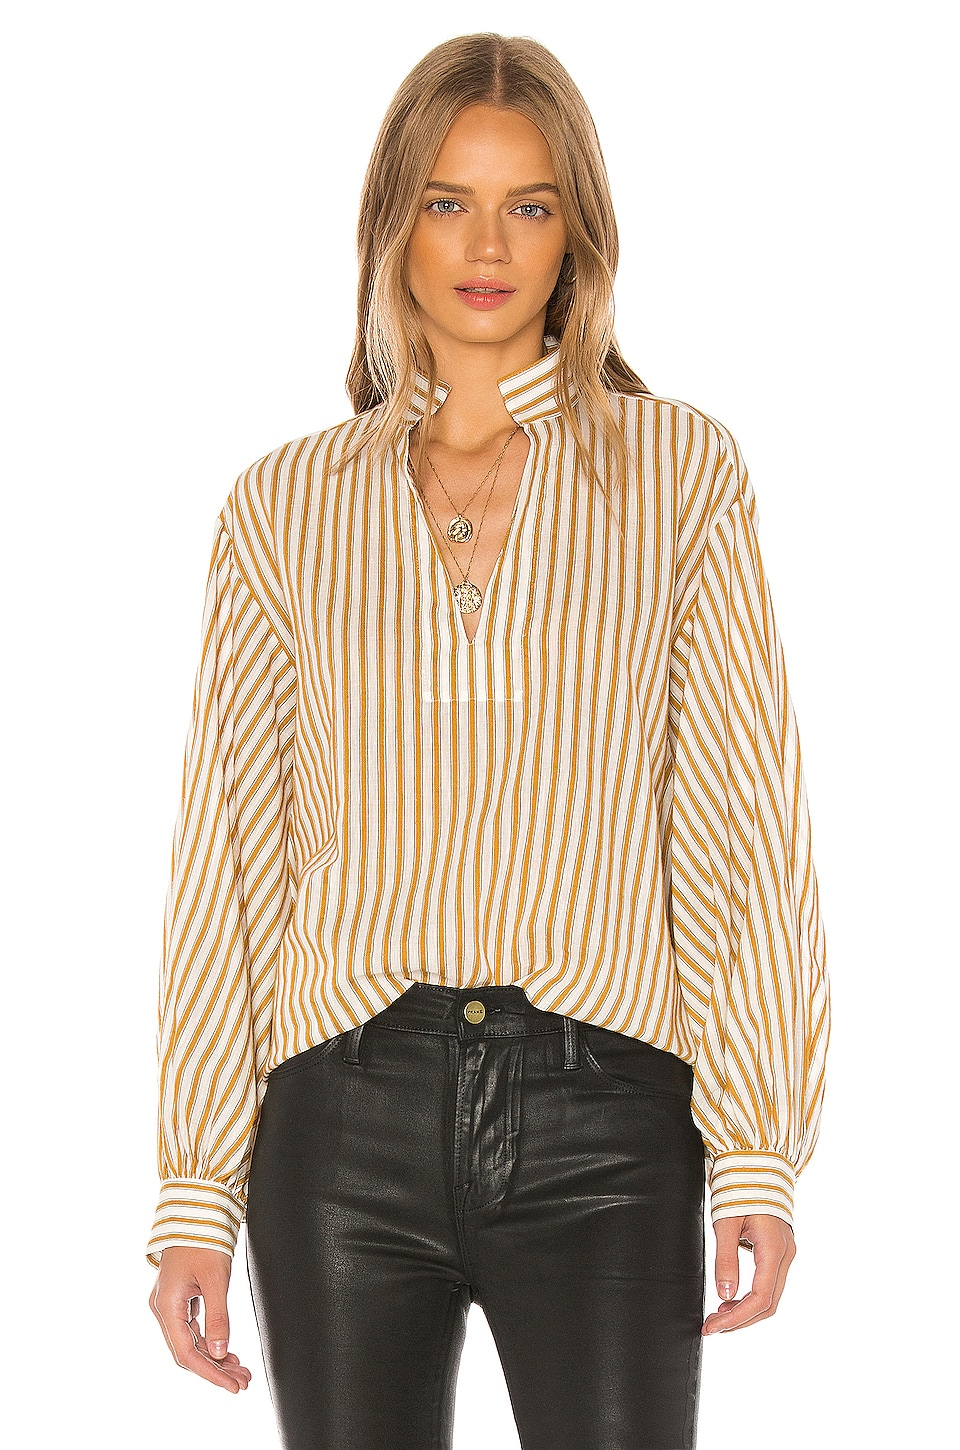 NILI LOTAN Joey Top in Ivory & Mustard